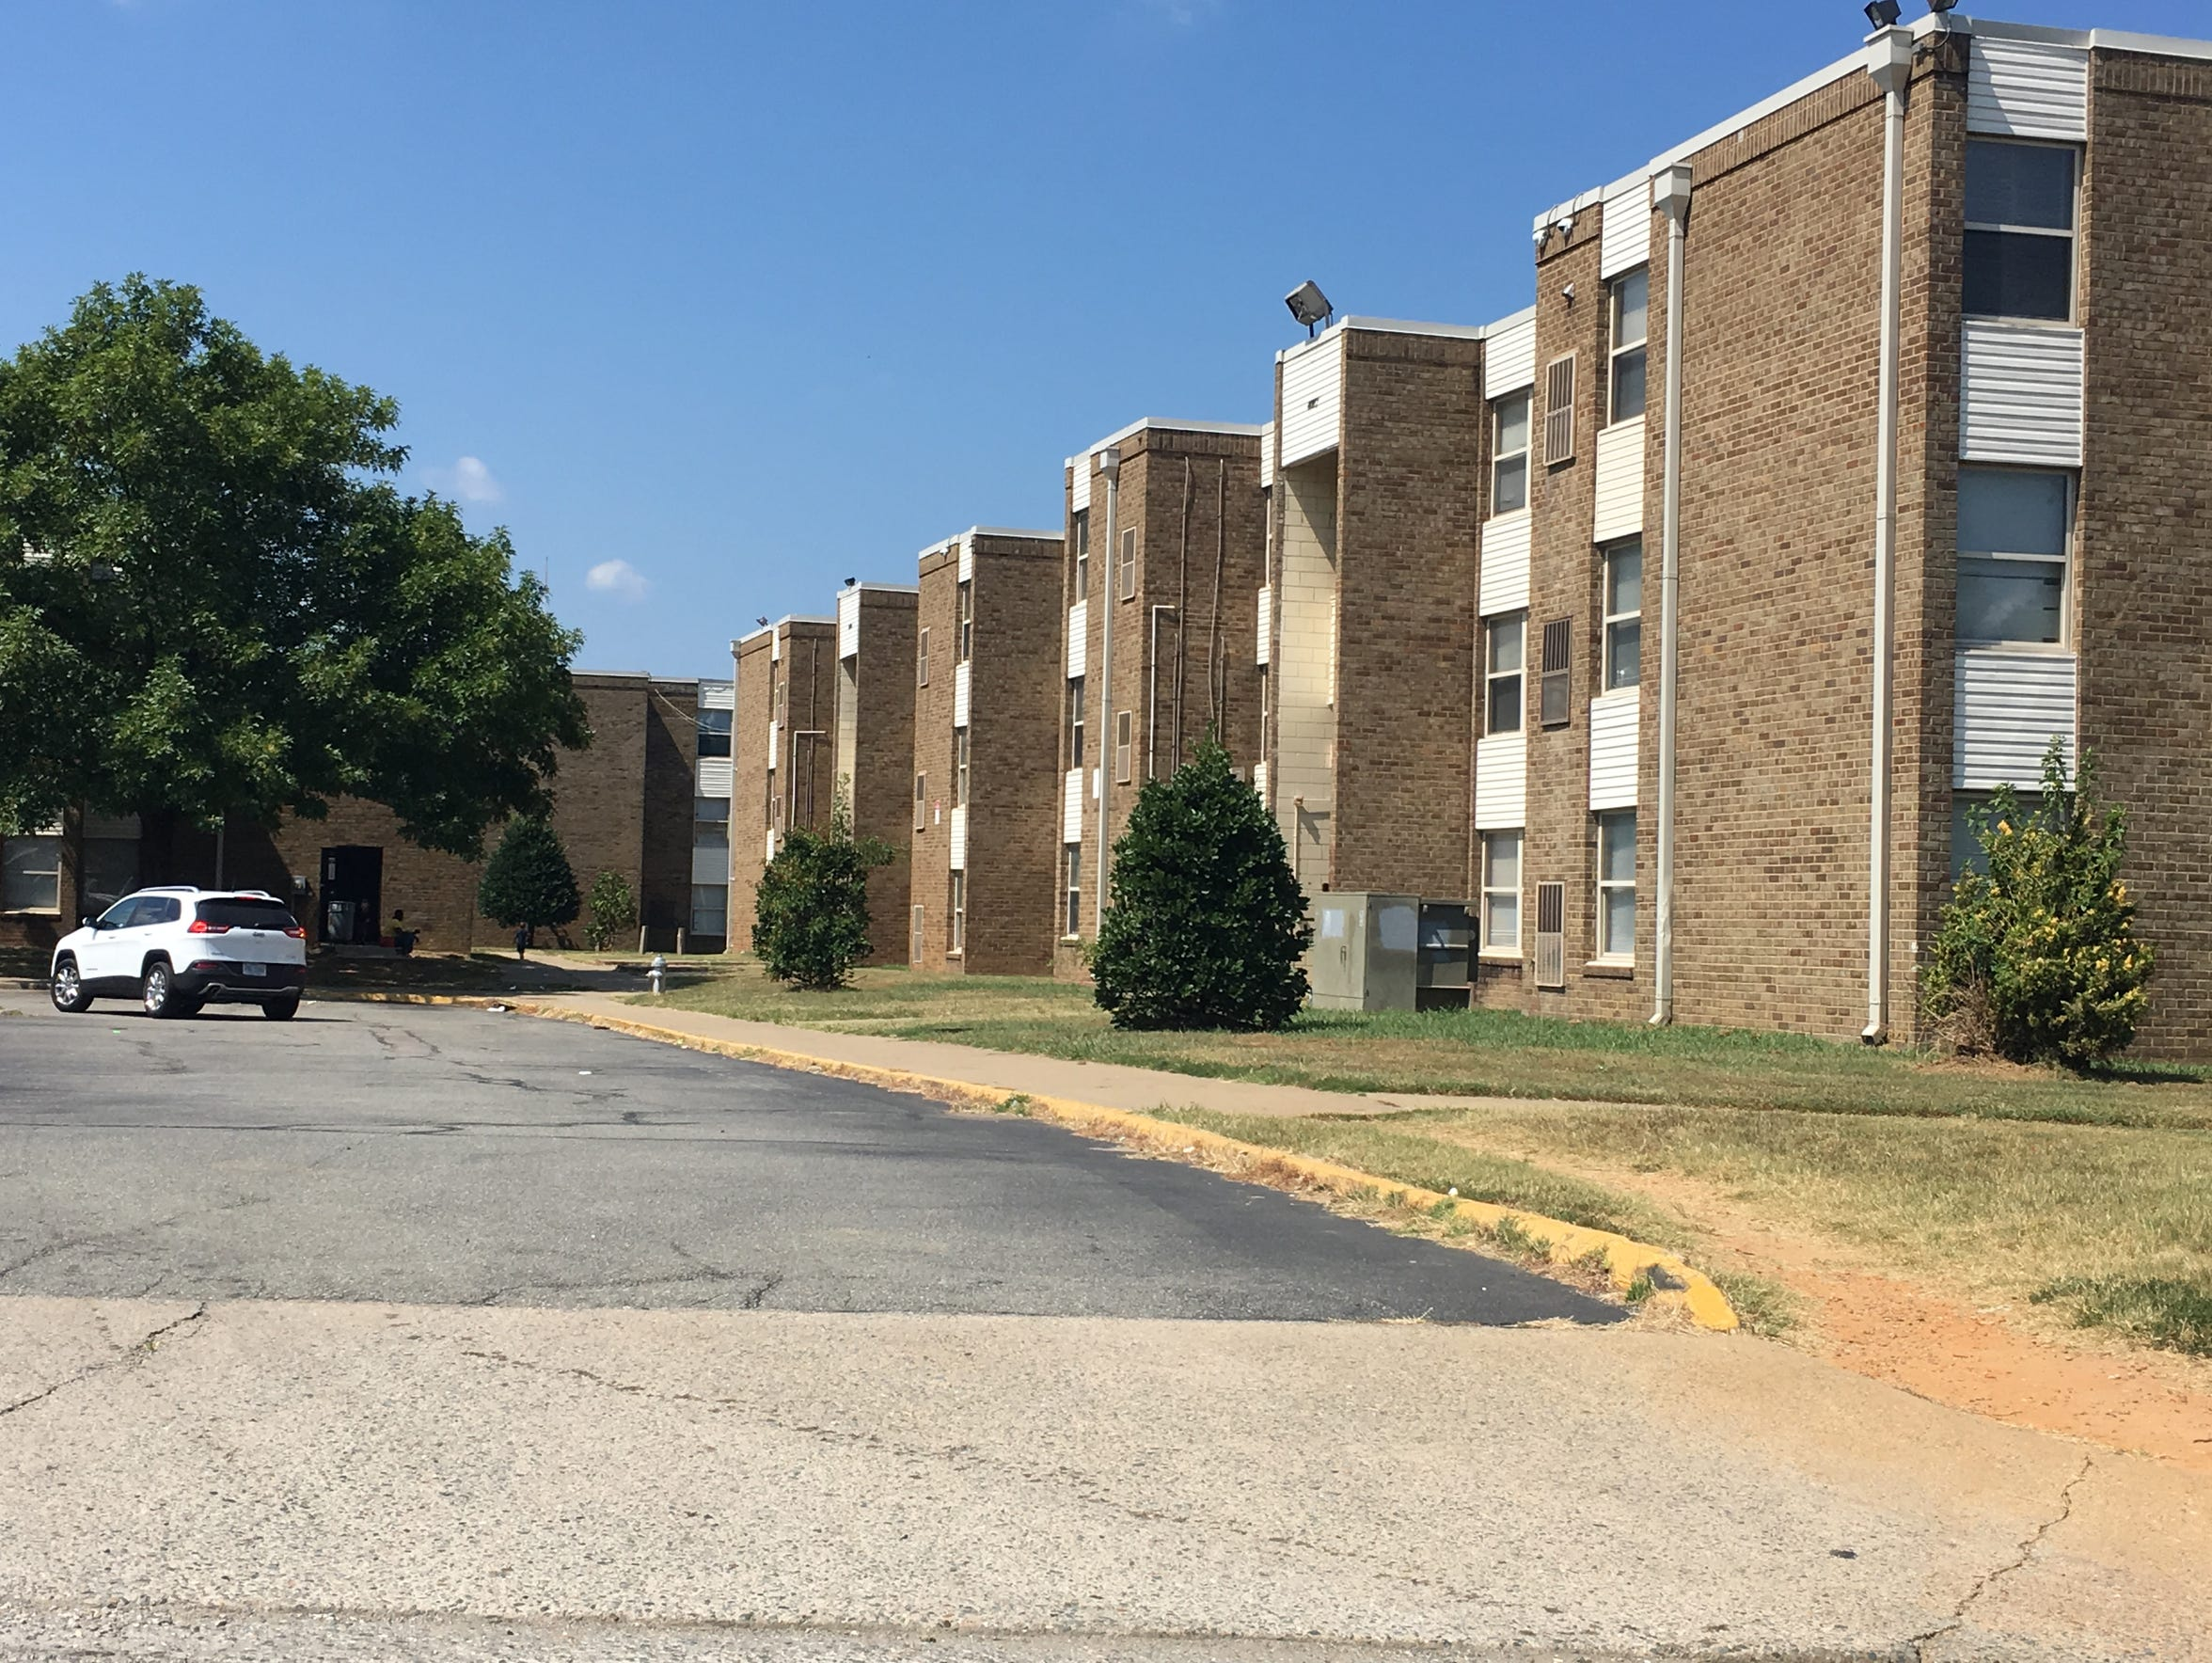 Little has changed at Midlothian Village Apartments